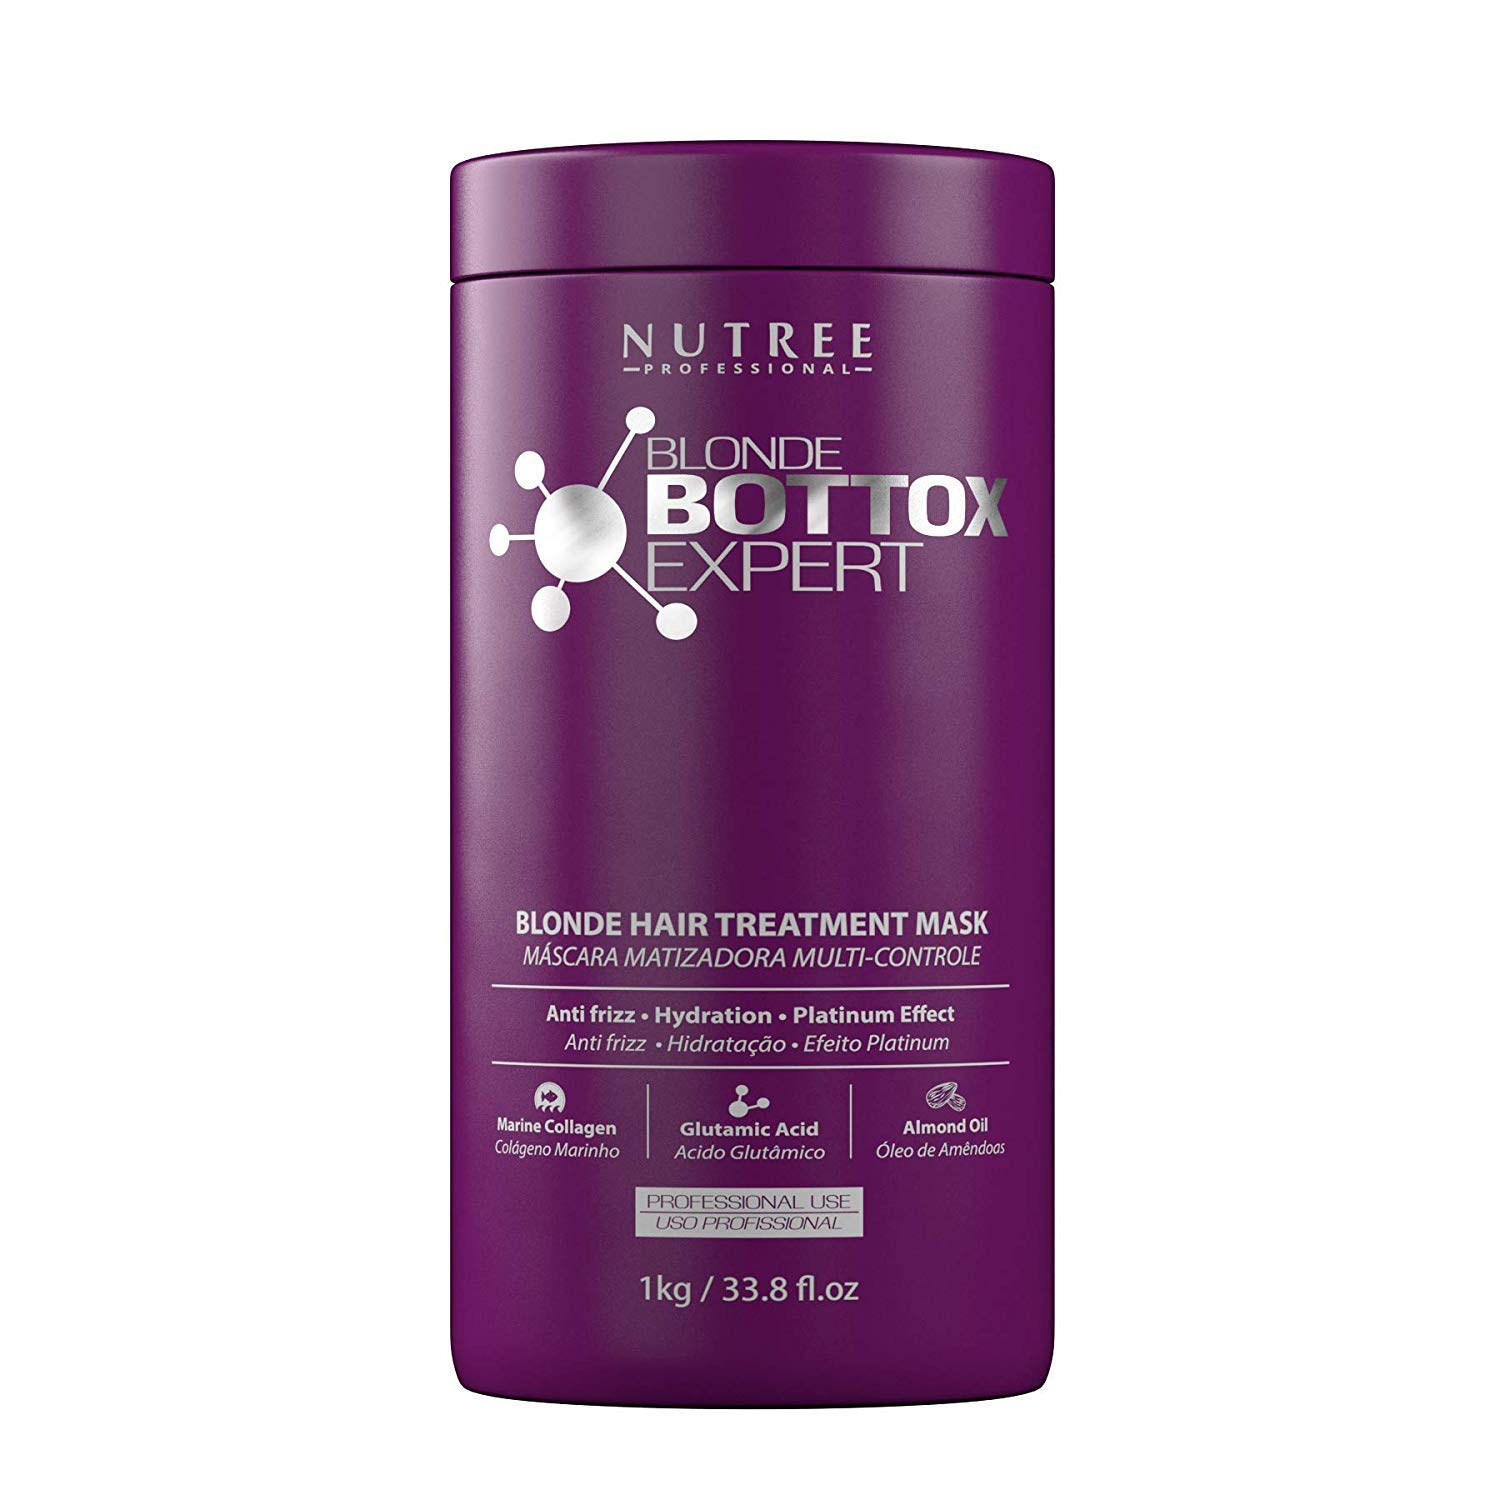 Blonde Botox Expert Purple Hair Treatment 33.8 fl.oz - Best for Blonde Hair - Anti-Brass, Eliminate Yellows, Toning Effect - Promotes the Smoothing of ...